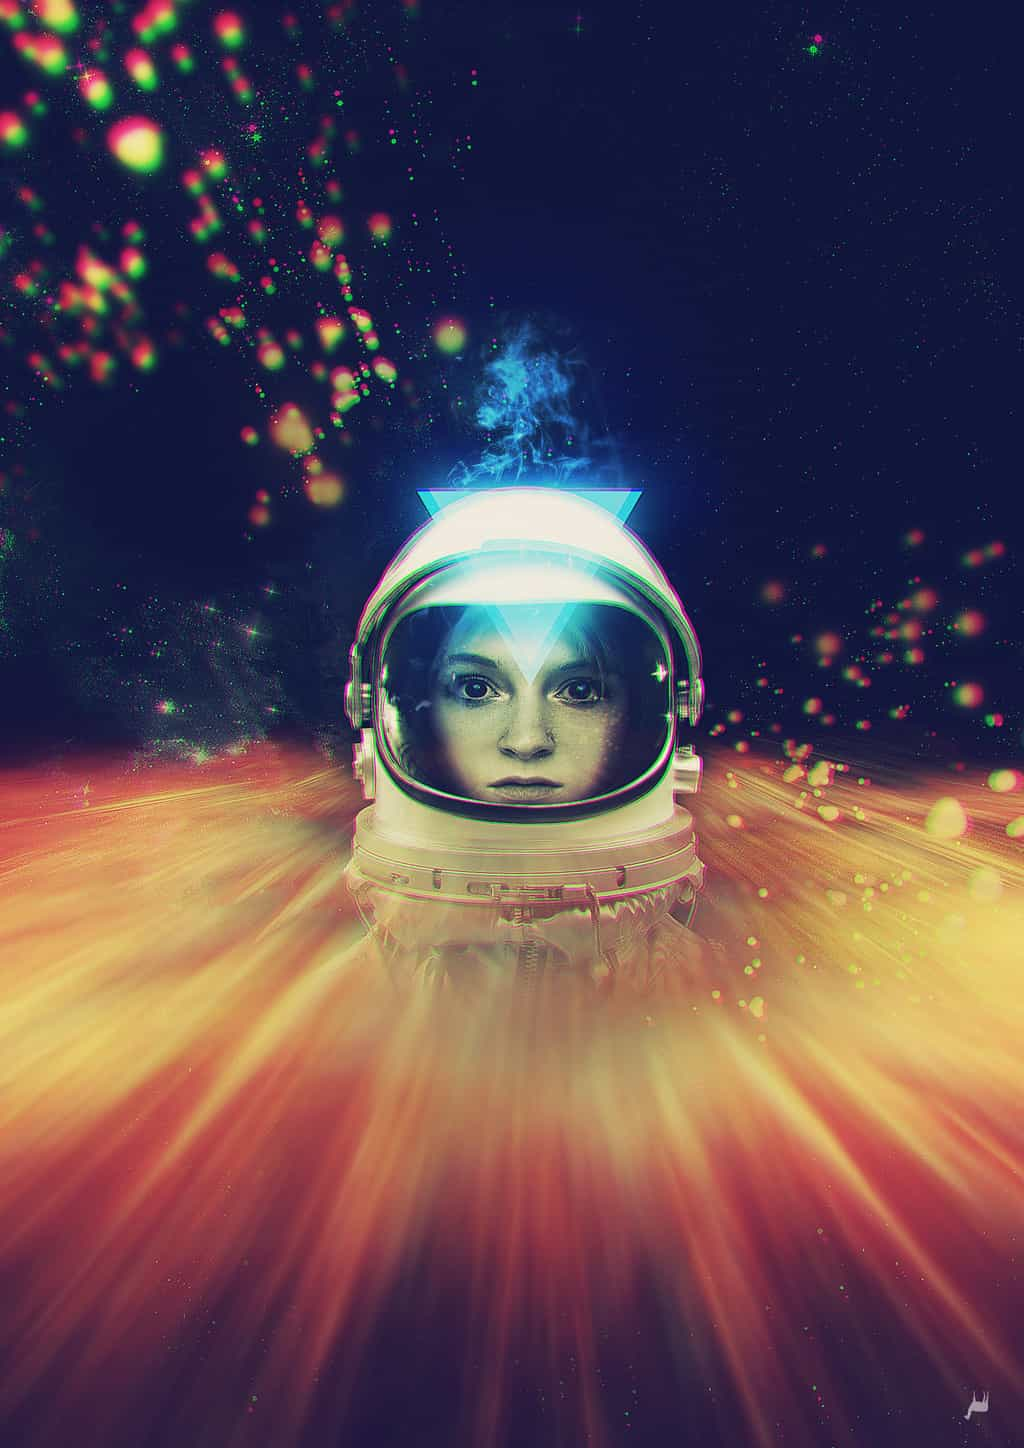 Illustration of women in space by Voila Vala